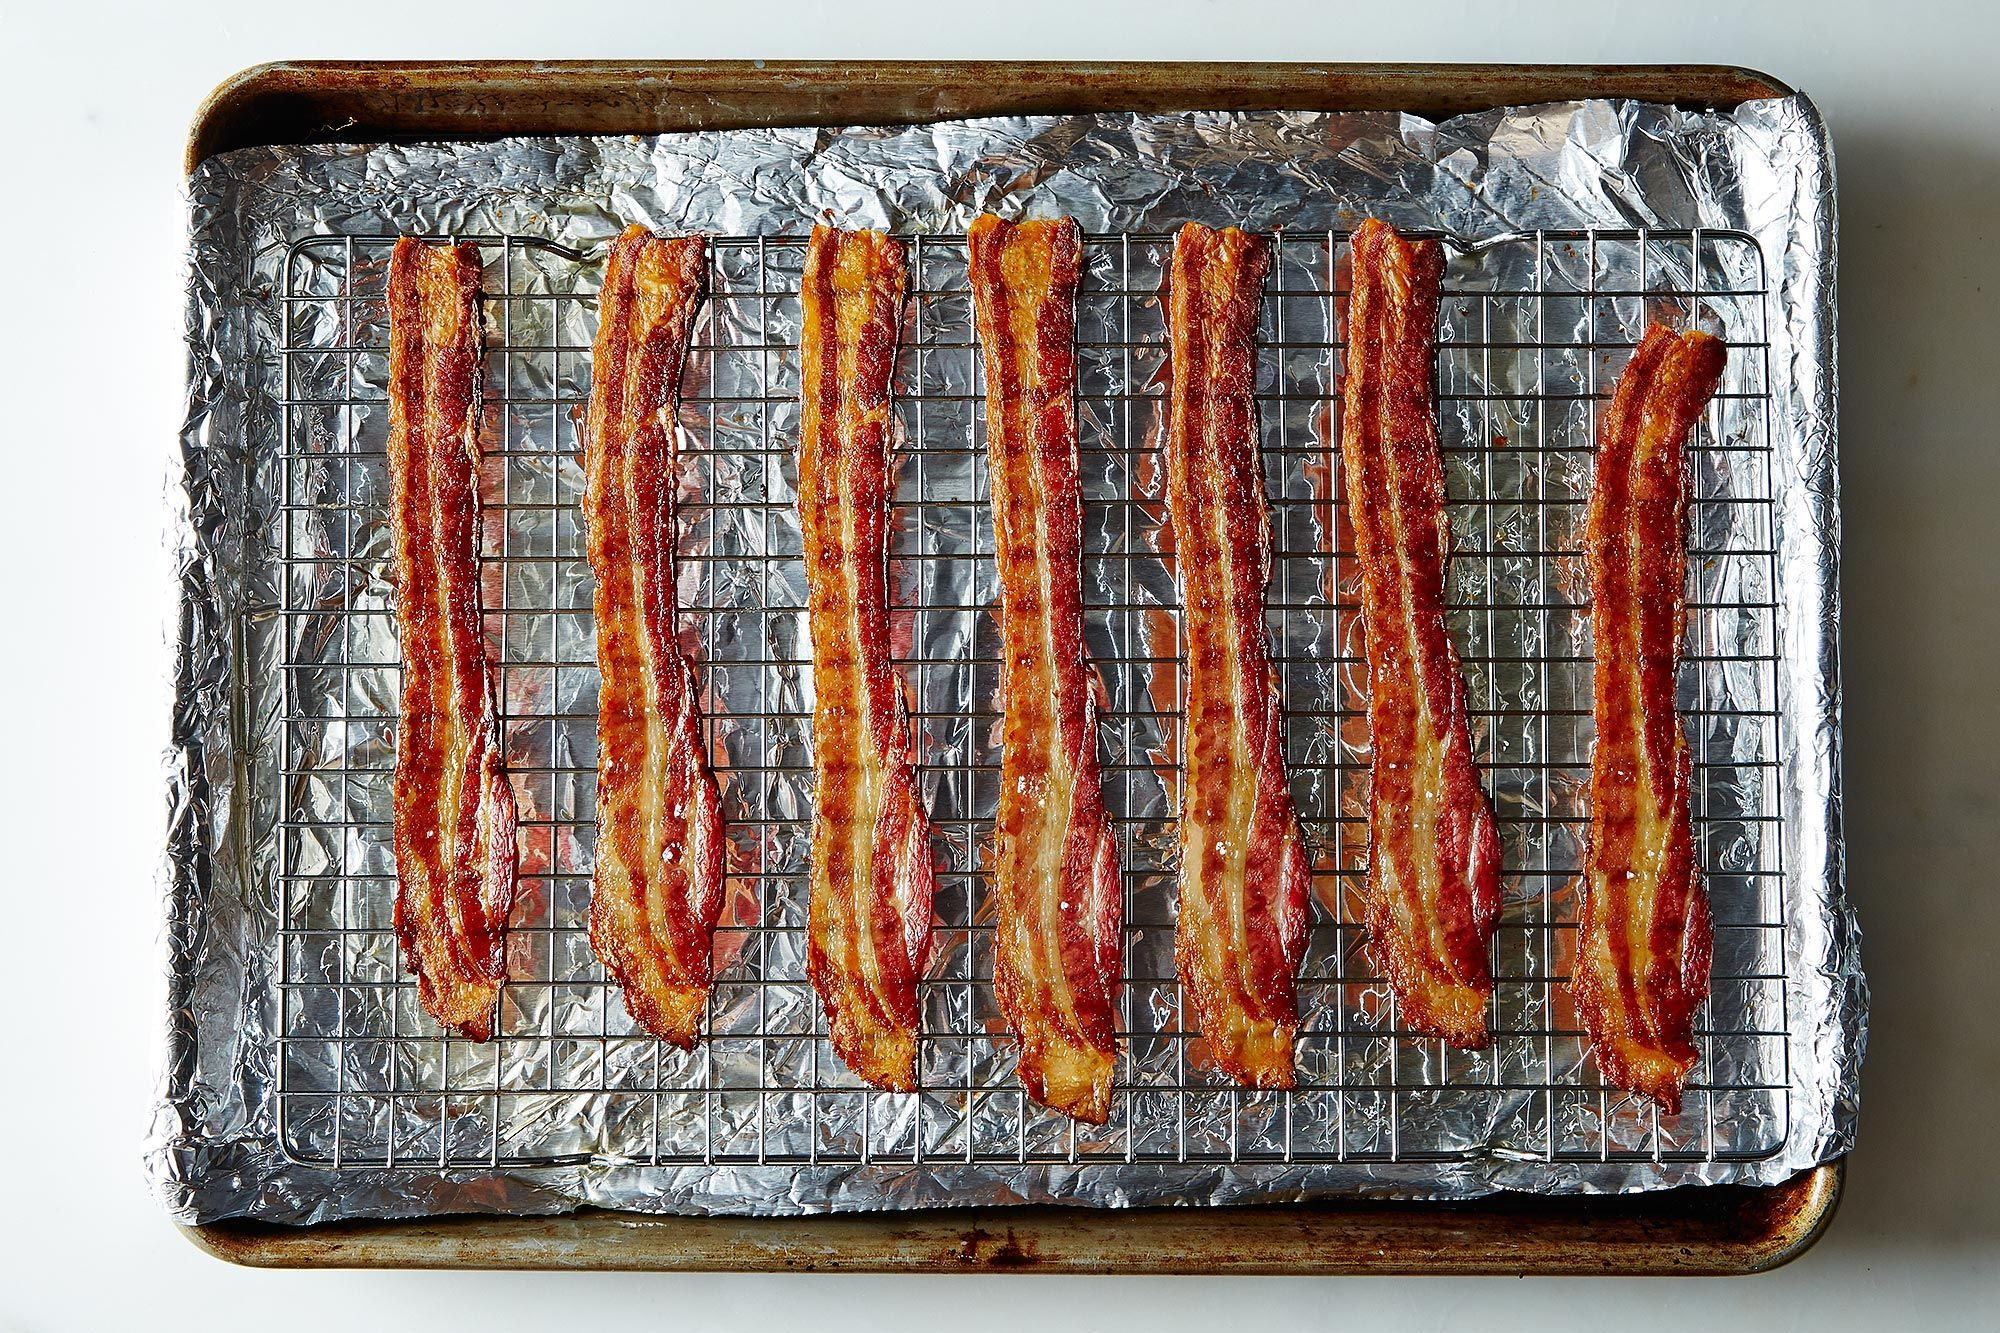 This Is the Only Way I Cook Bacon Now, Thanks to ... a Power Outage